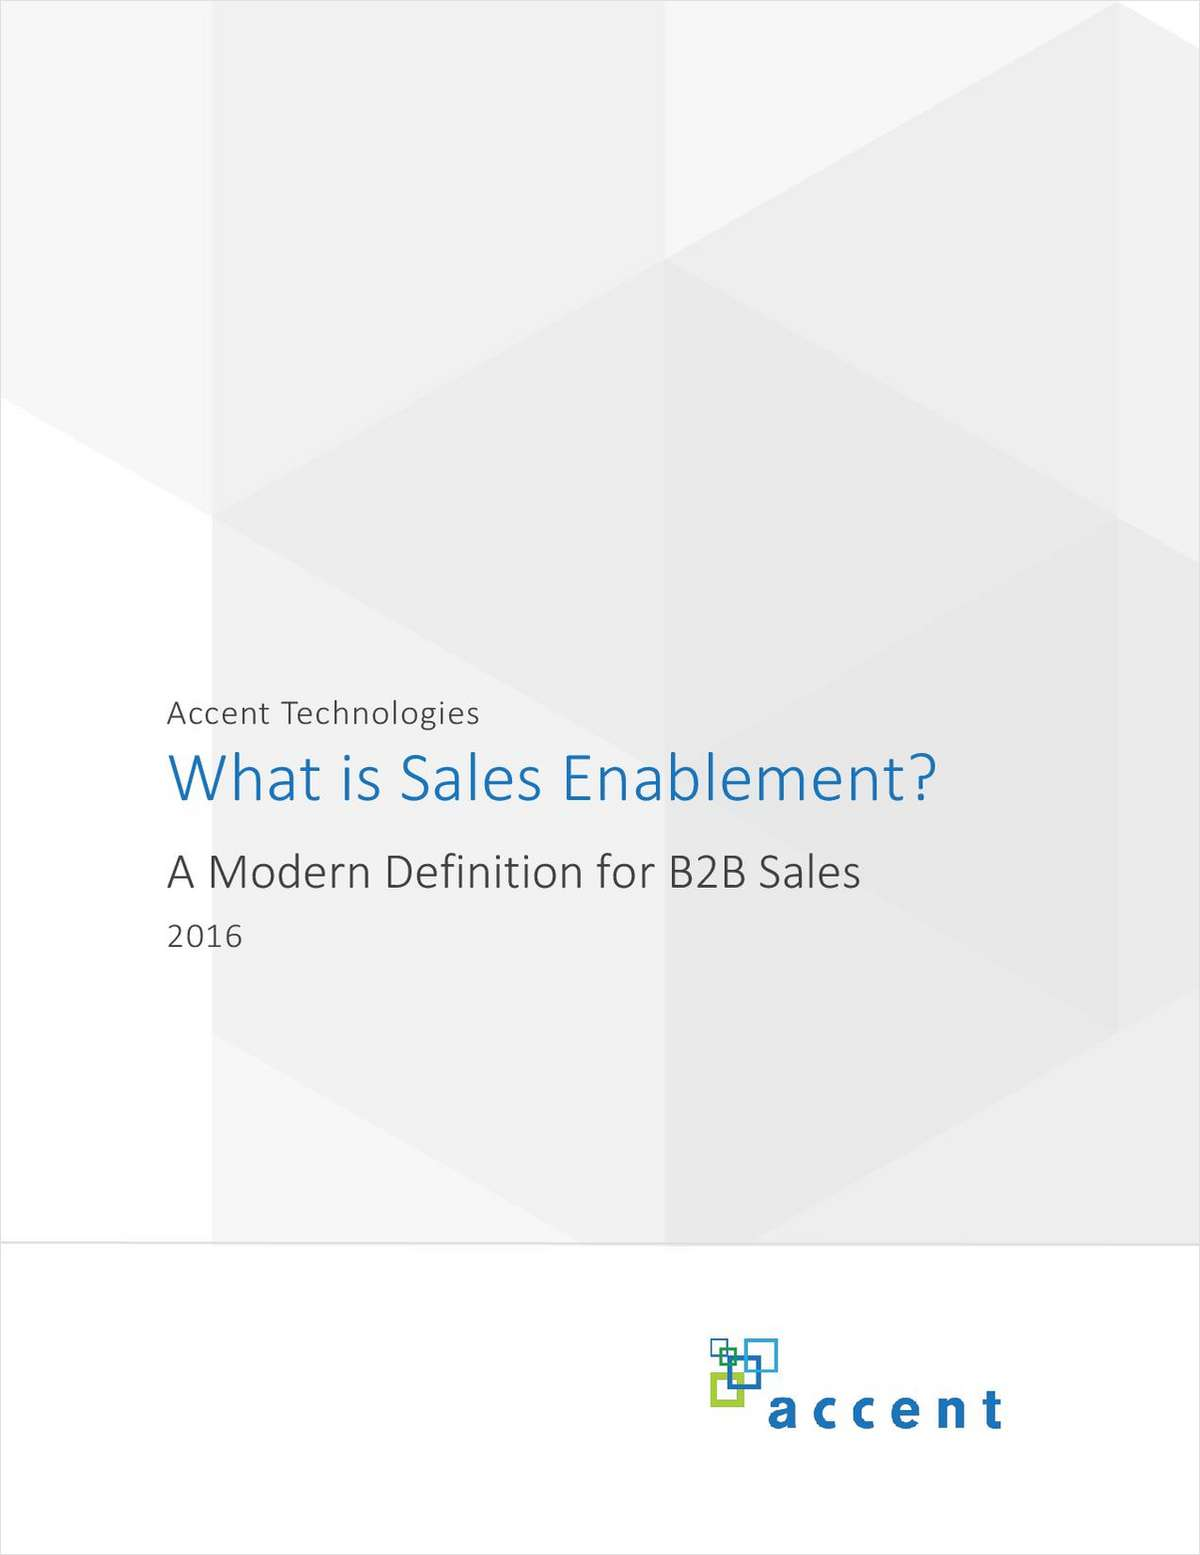 What is Sales Enablement? A Modern Definition for B2B Sales.